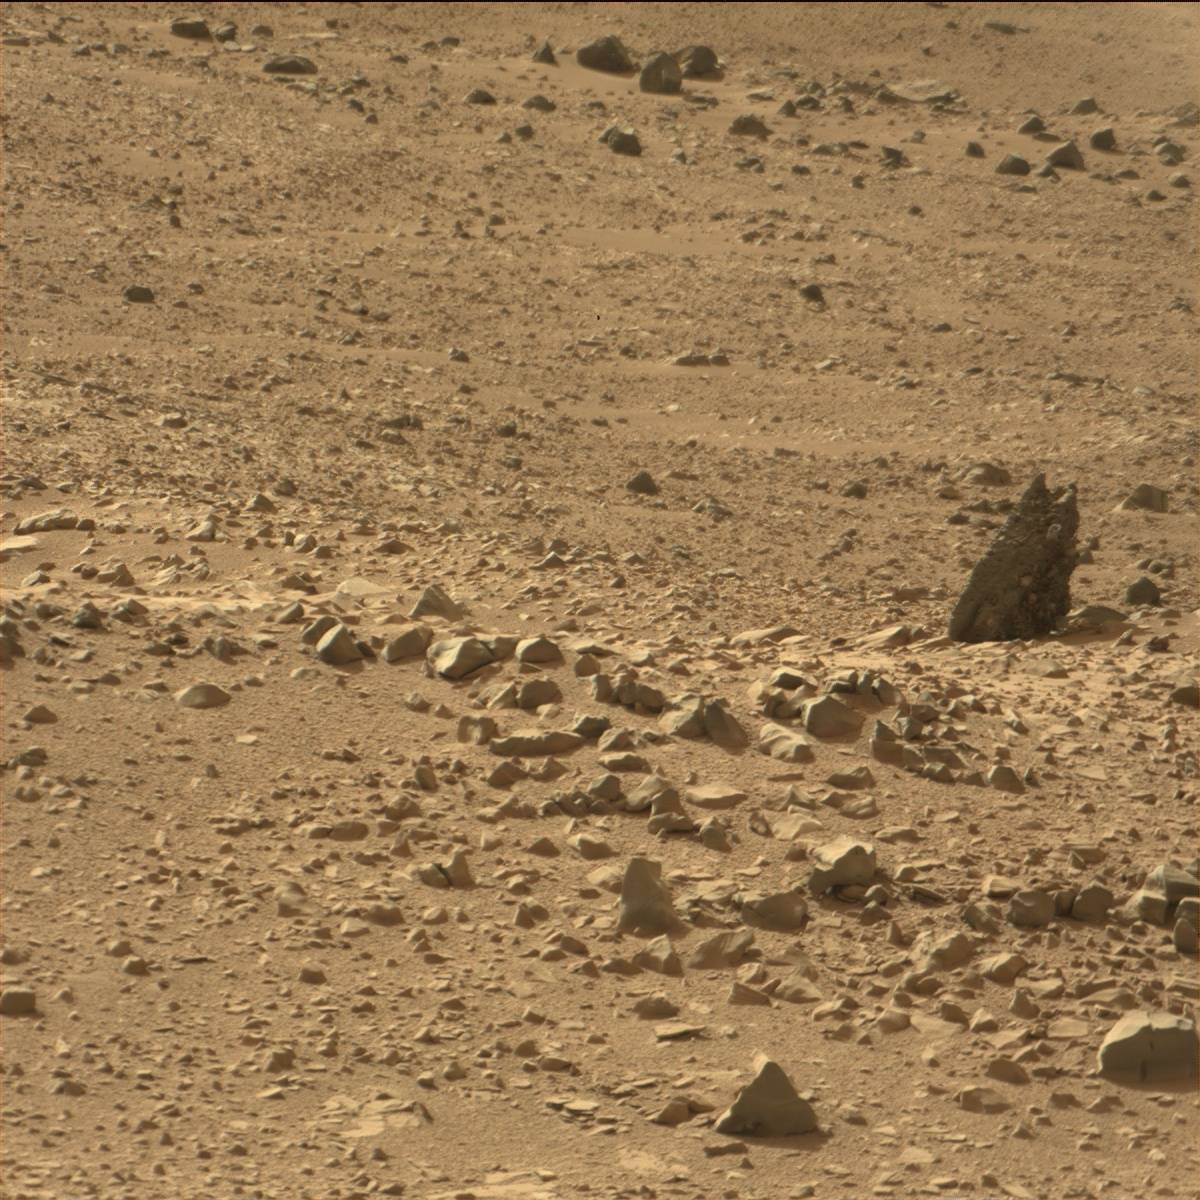 nasa pictures of life on mars - photo #29